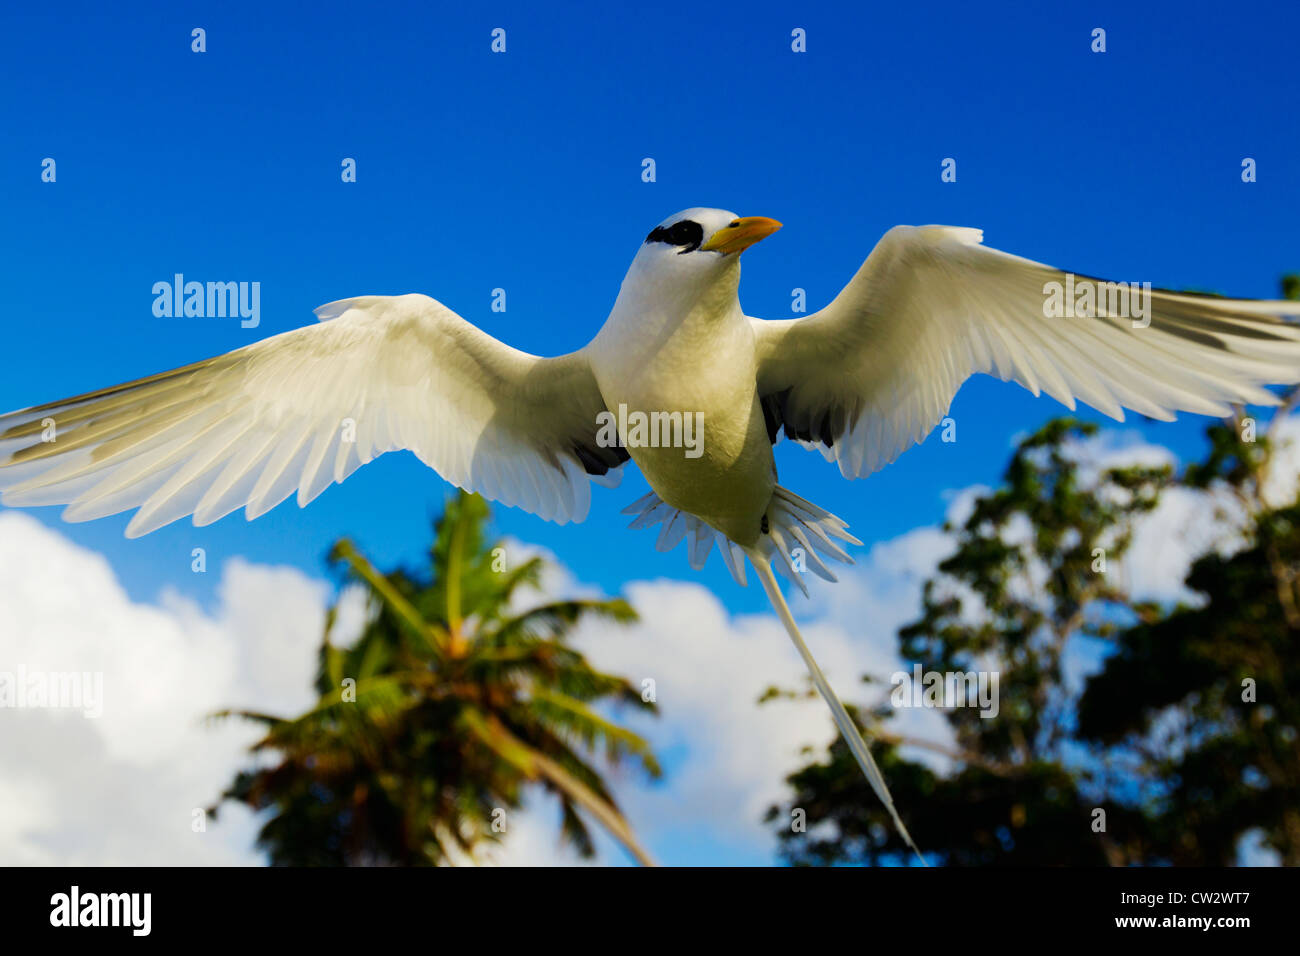 White-tailed tropicbird (Phaethon lepturus). Seychelles. Dist. Tropical islands and oceans worldwide. - Stock Image